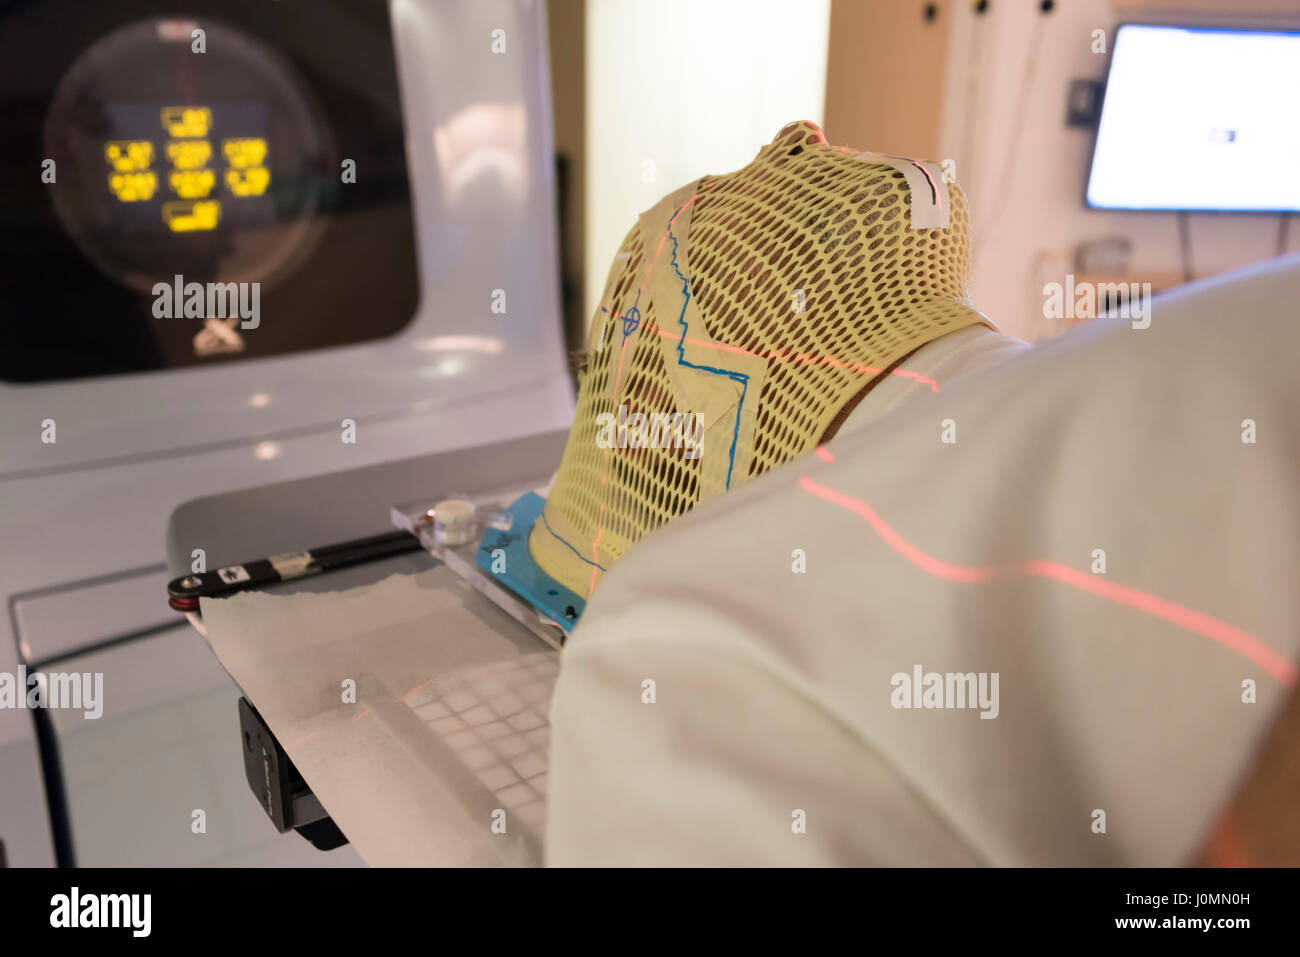 Patient Radiation therapy mask showing laser lines for targeting cancer cells in the brain - Stock Image